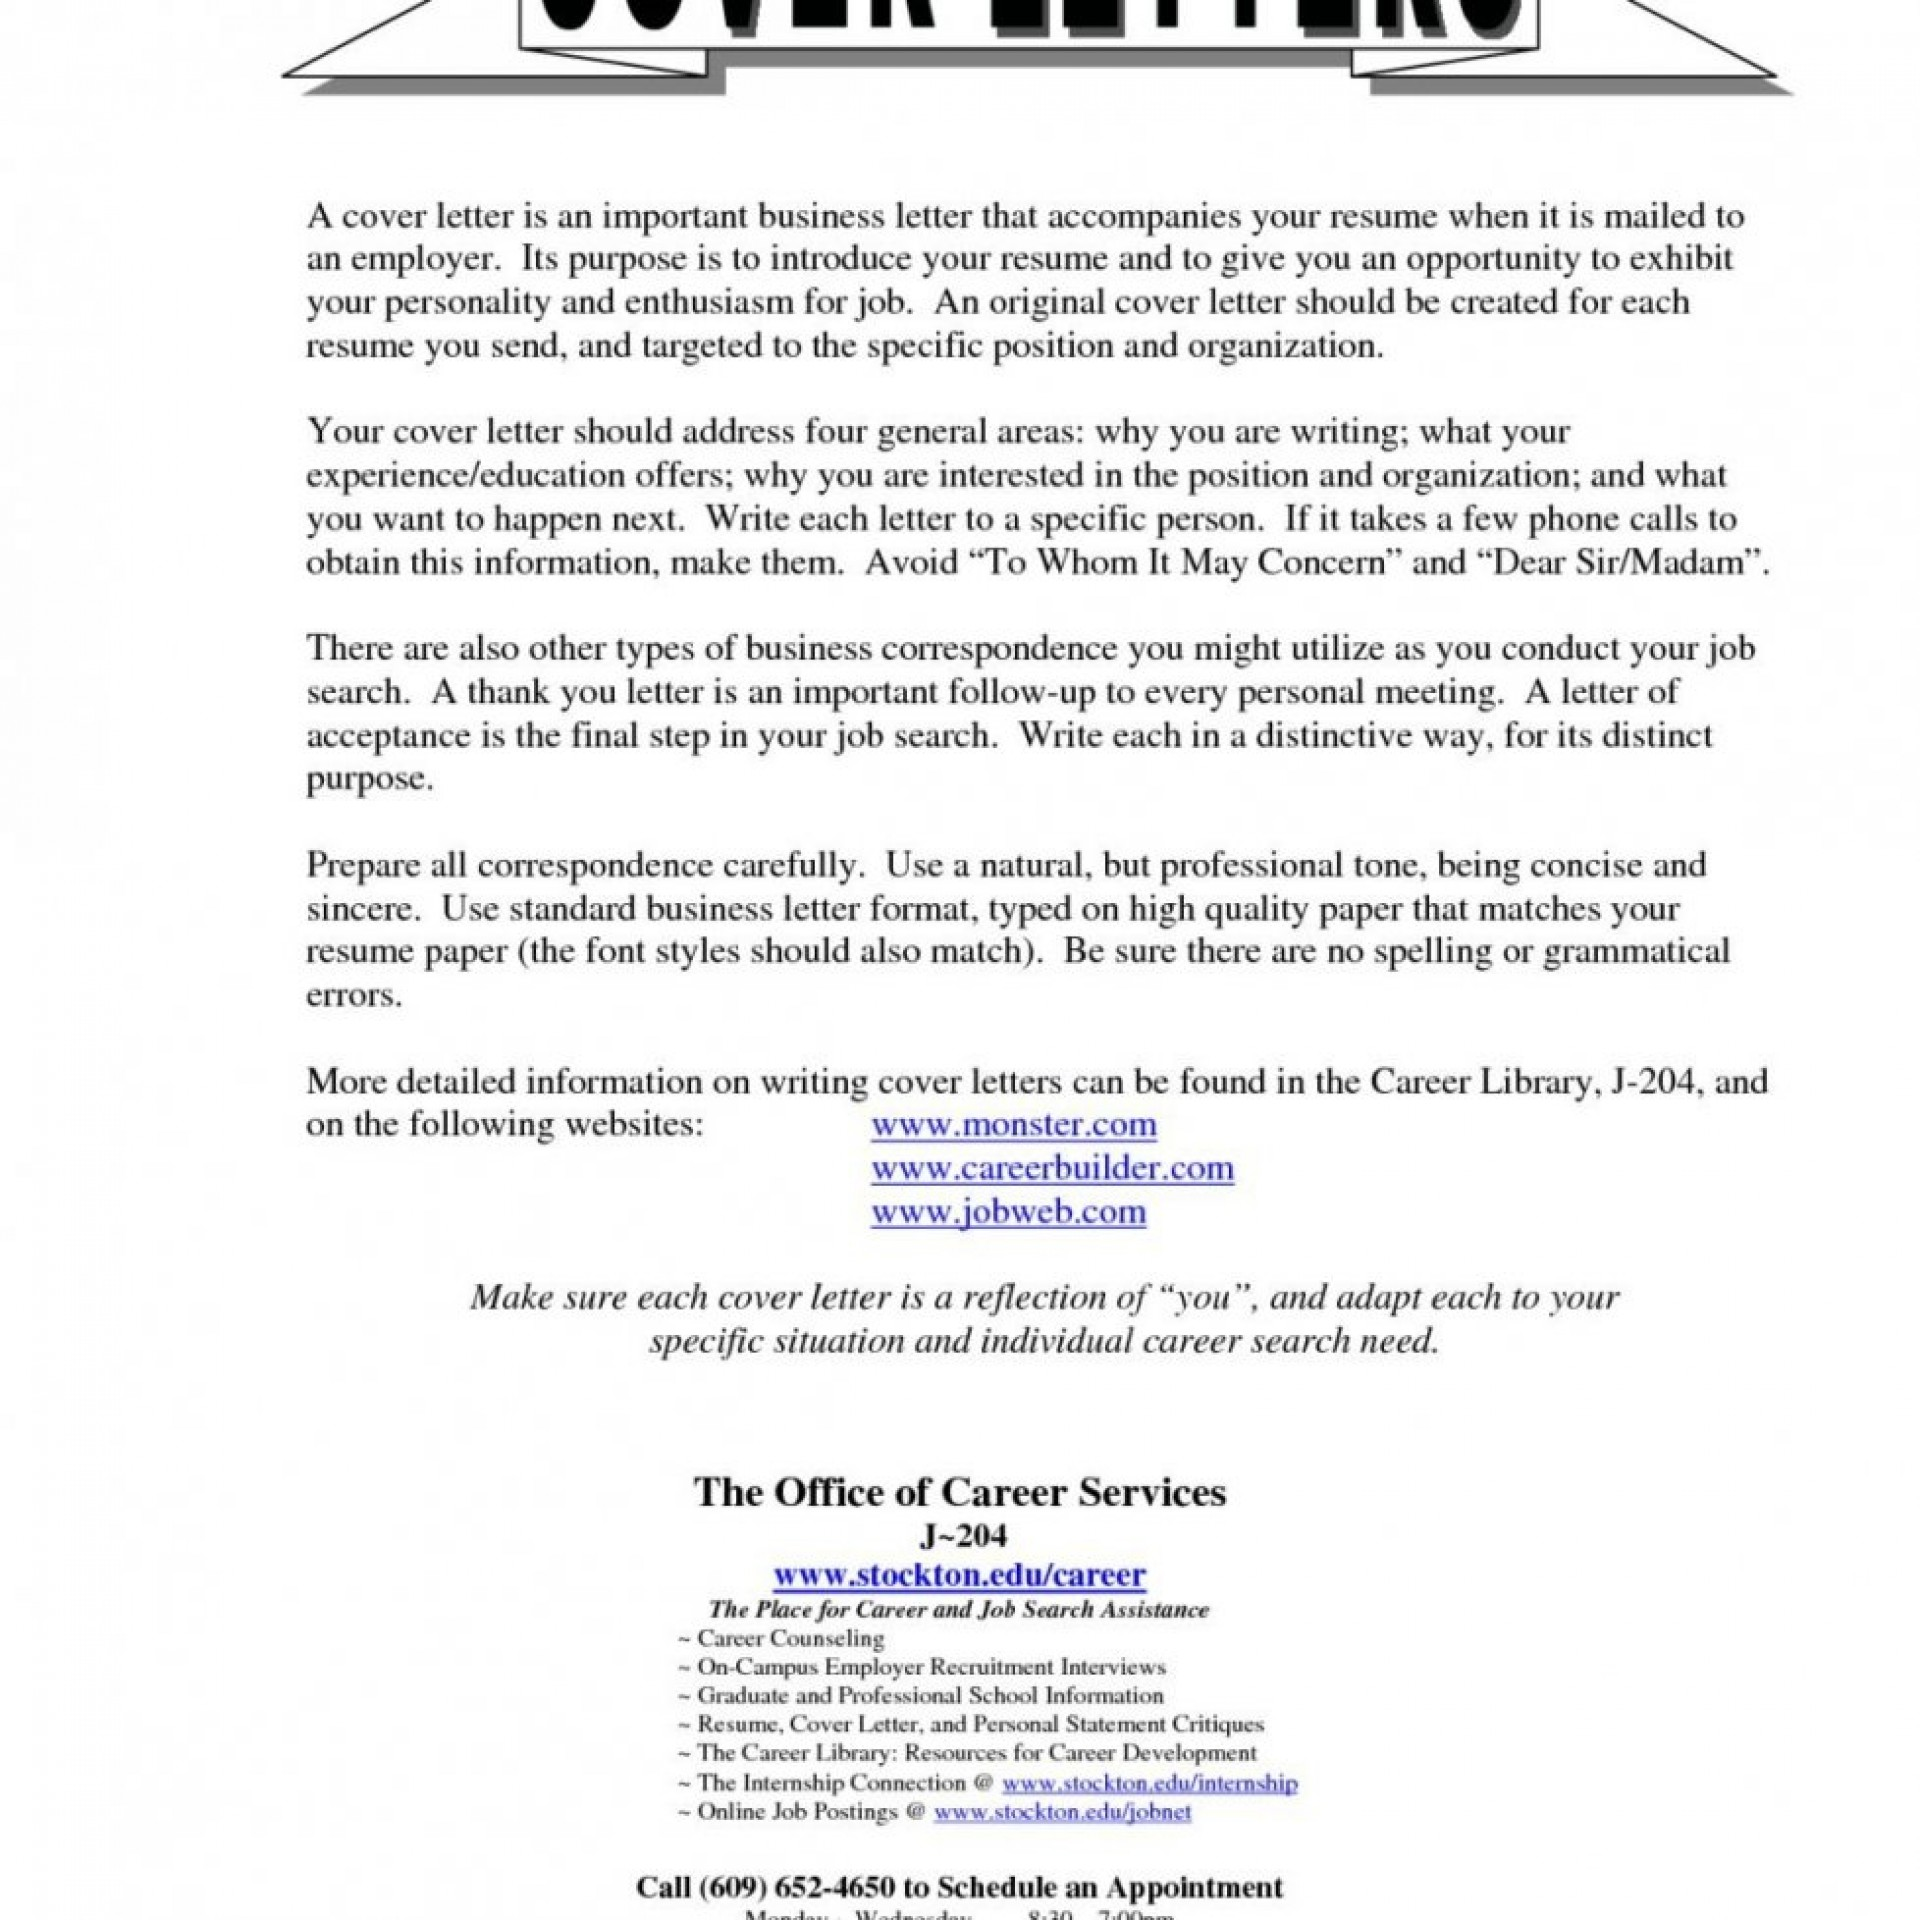 005 Cover Letter For Res Stunning Research Paper Wonderful Sample Article Submission 1920